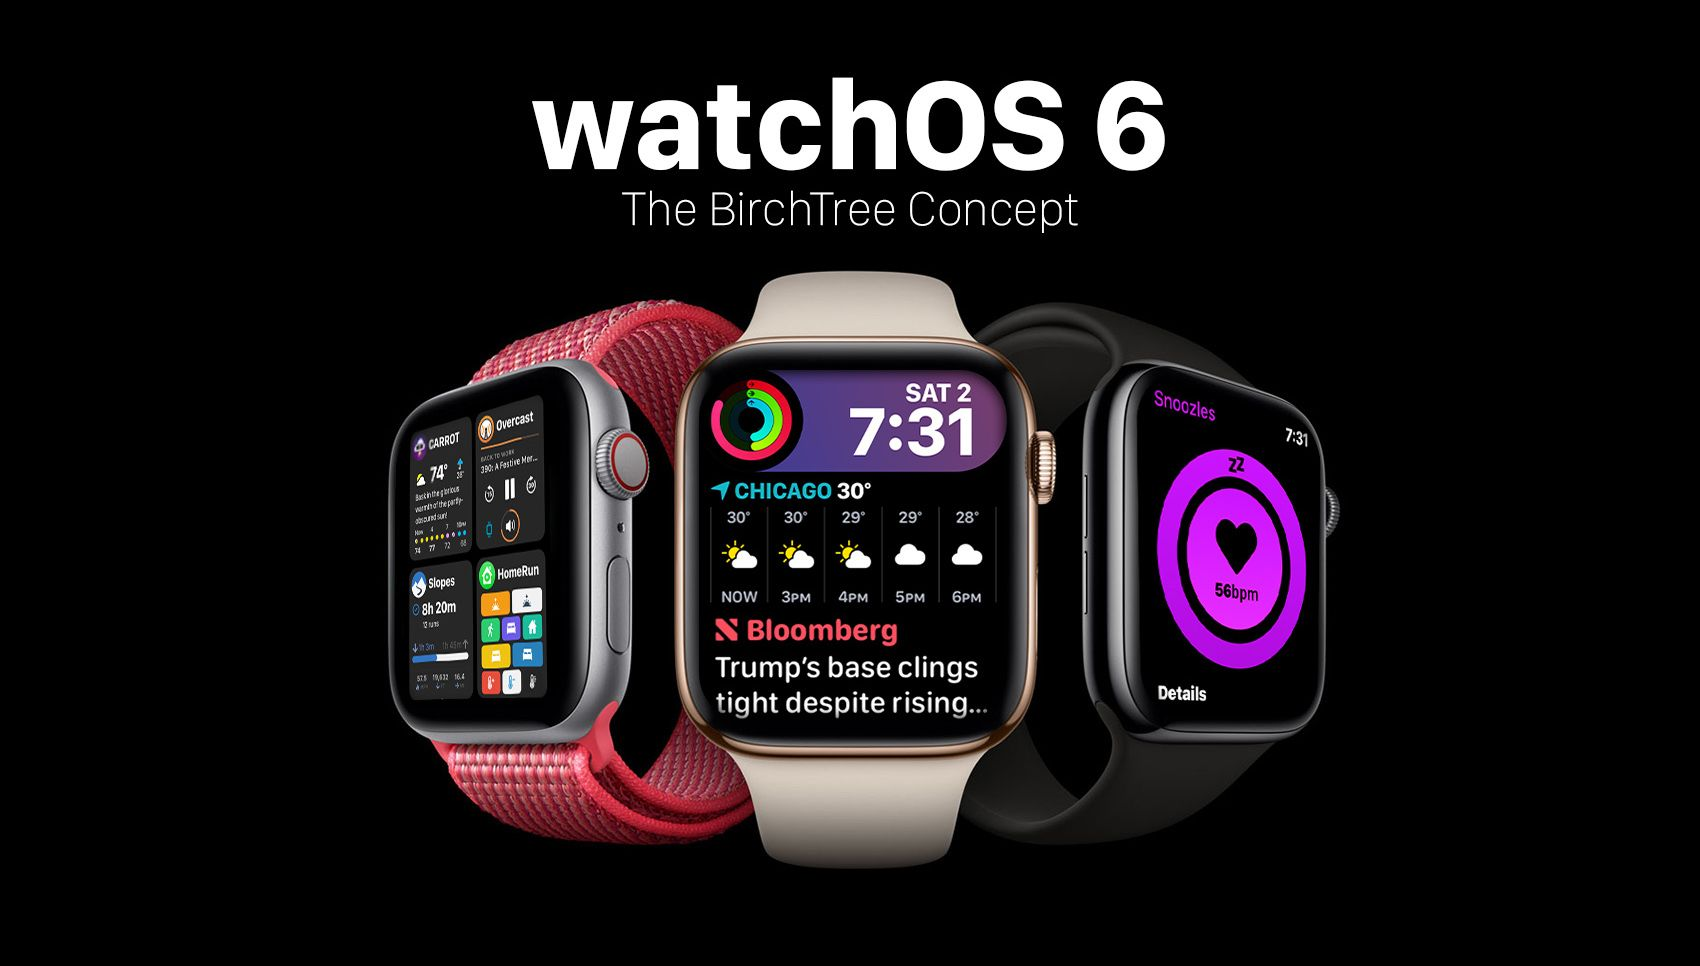 watchOS 6: The BirchTree Concept